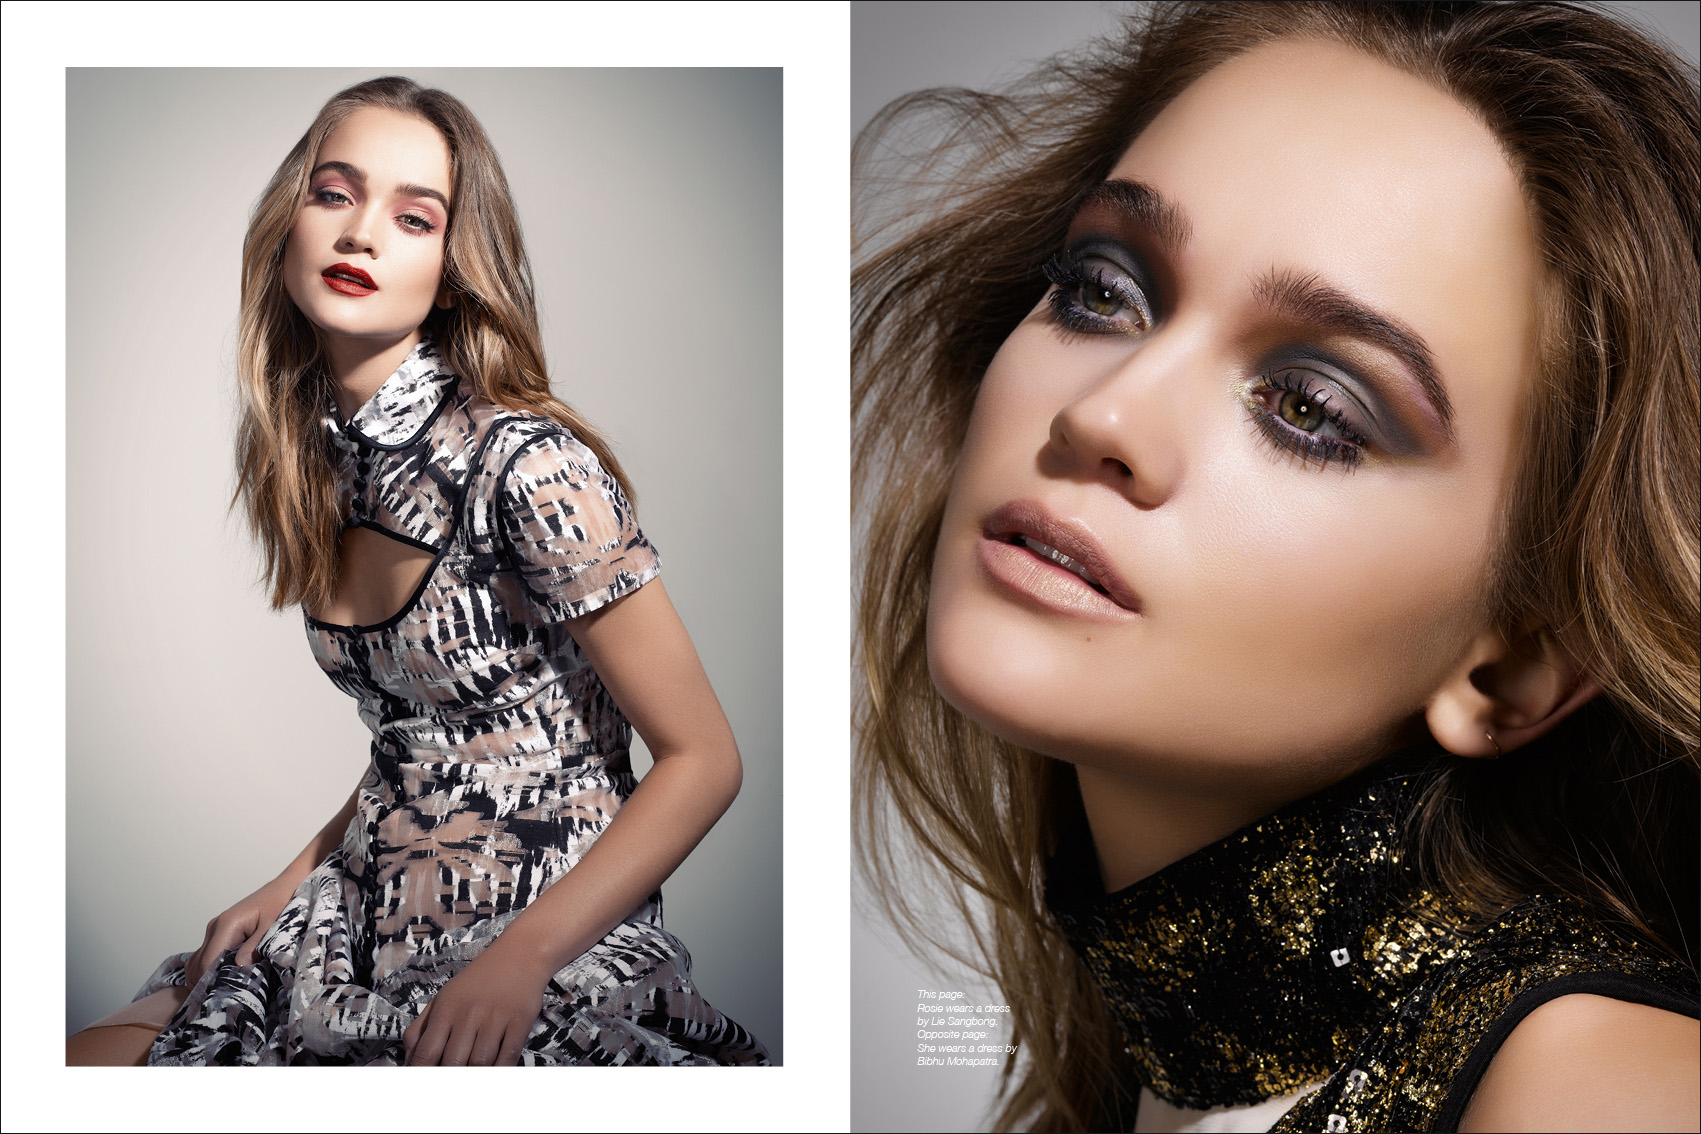 Rosie Tupper - The Untitled Magazine - Photography by Indira Cesarine